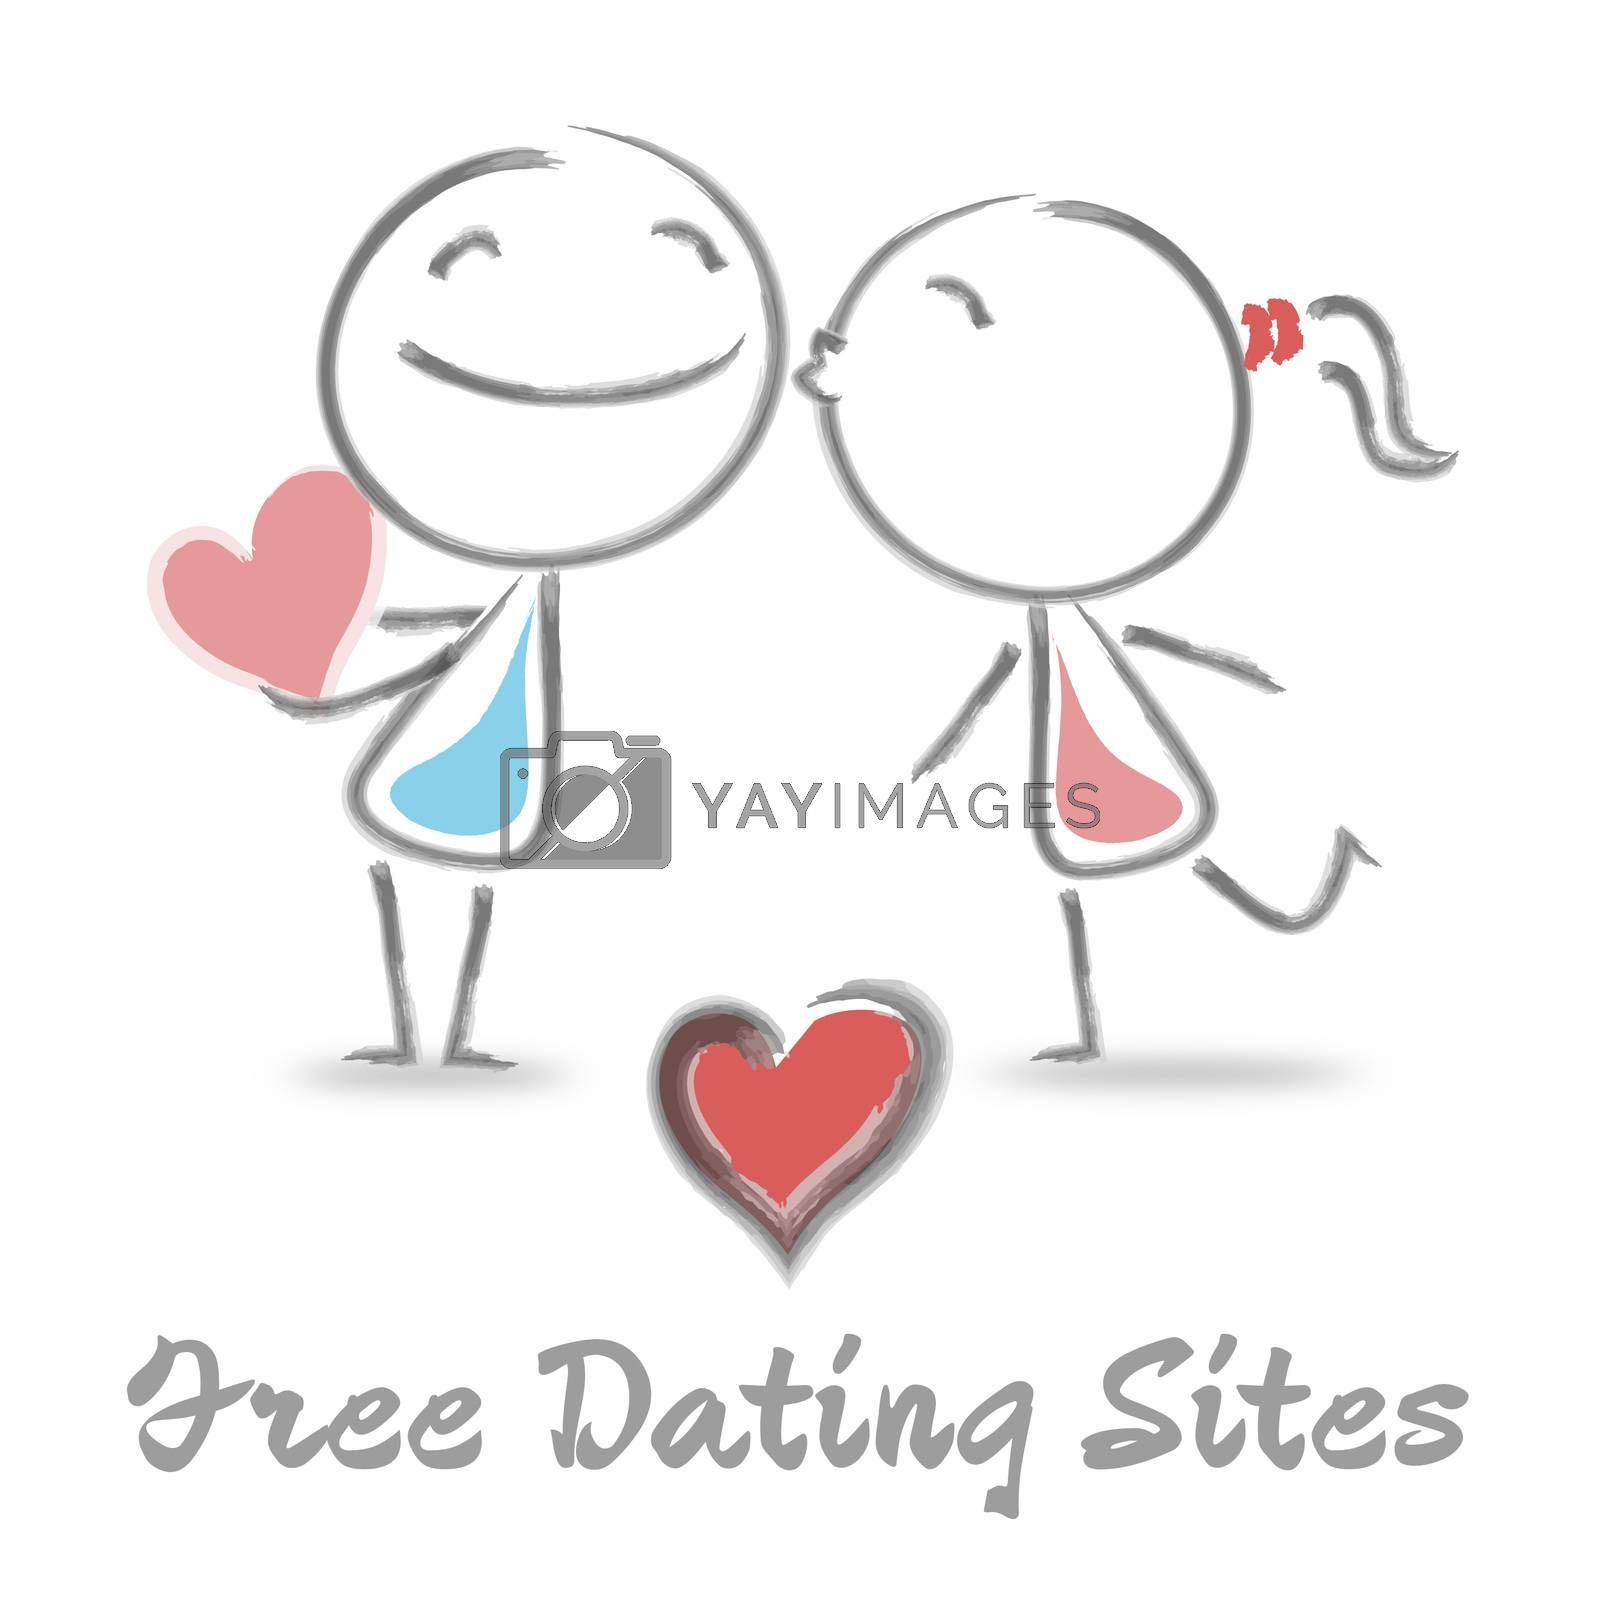 Free Dating Sites Representing Internet Love And Romance